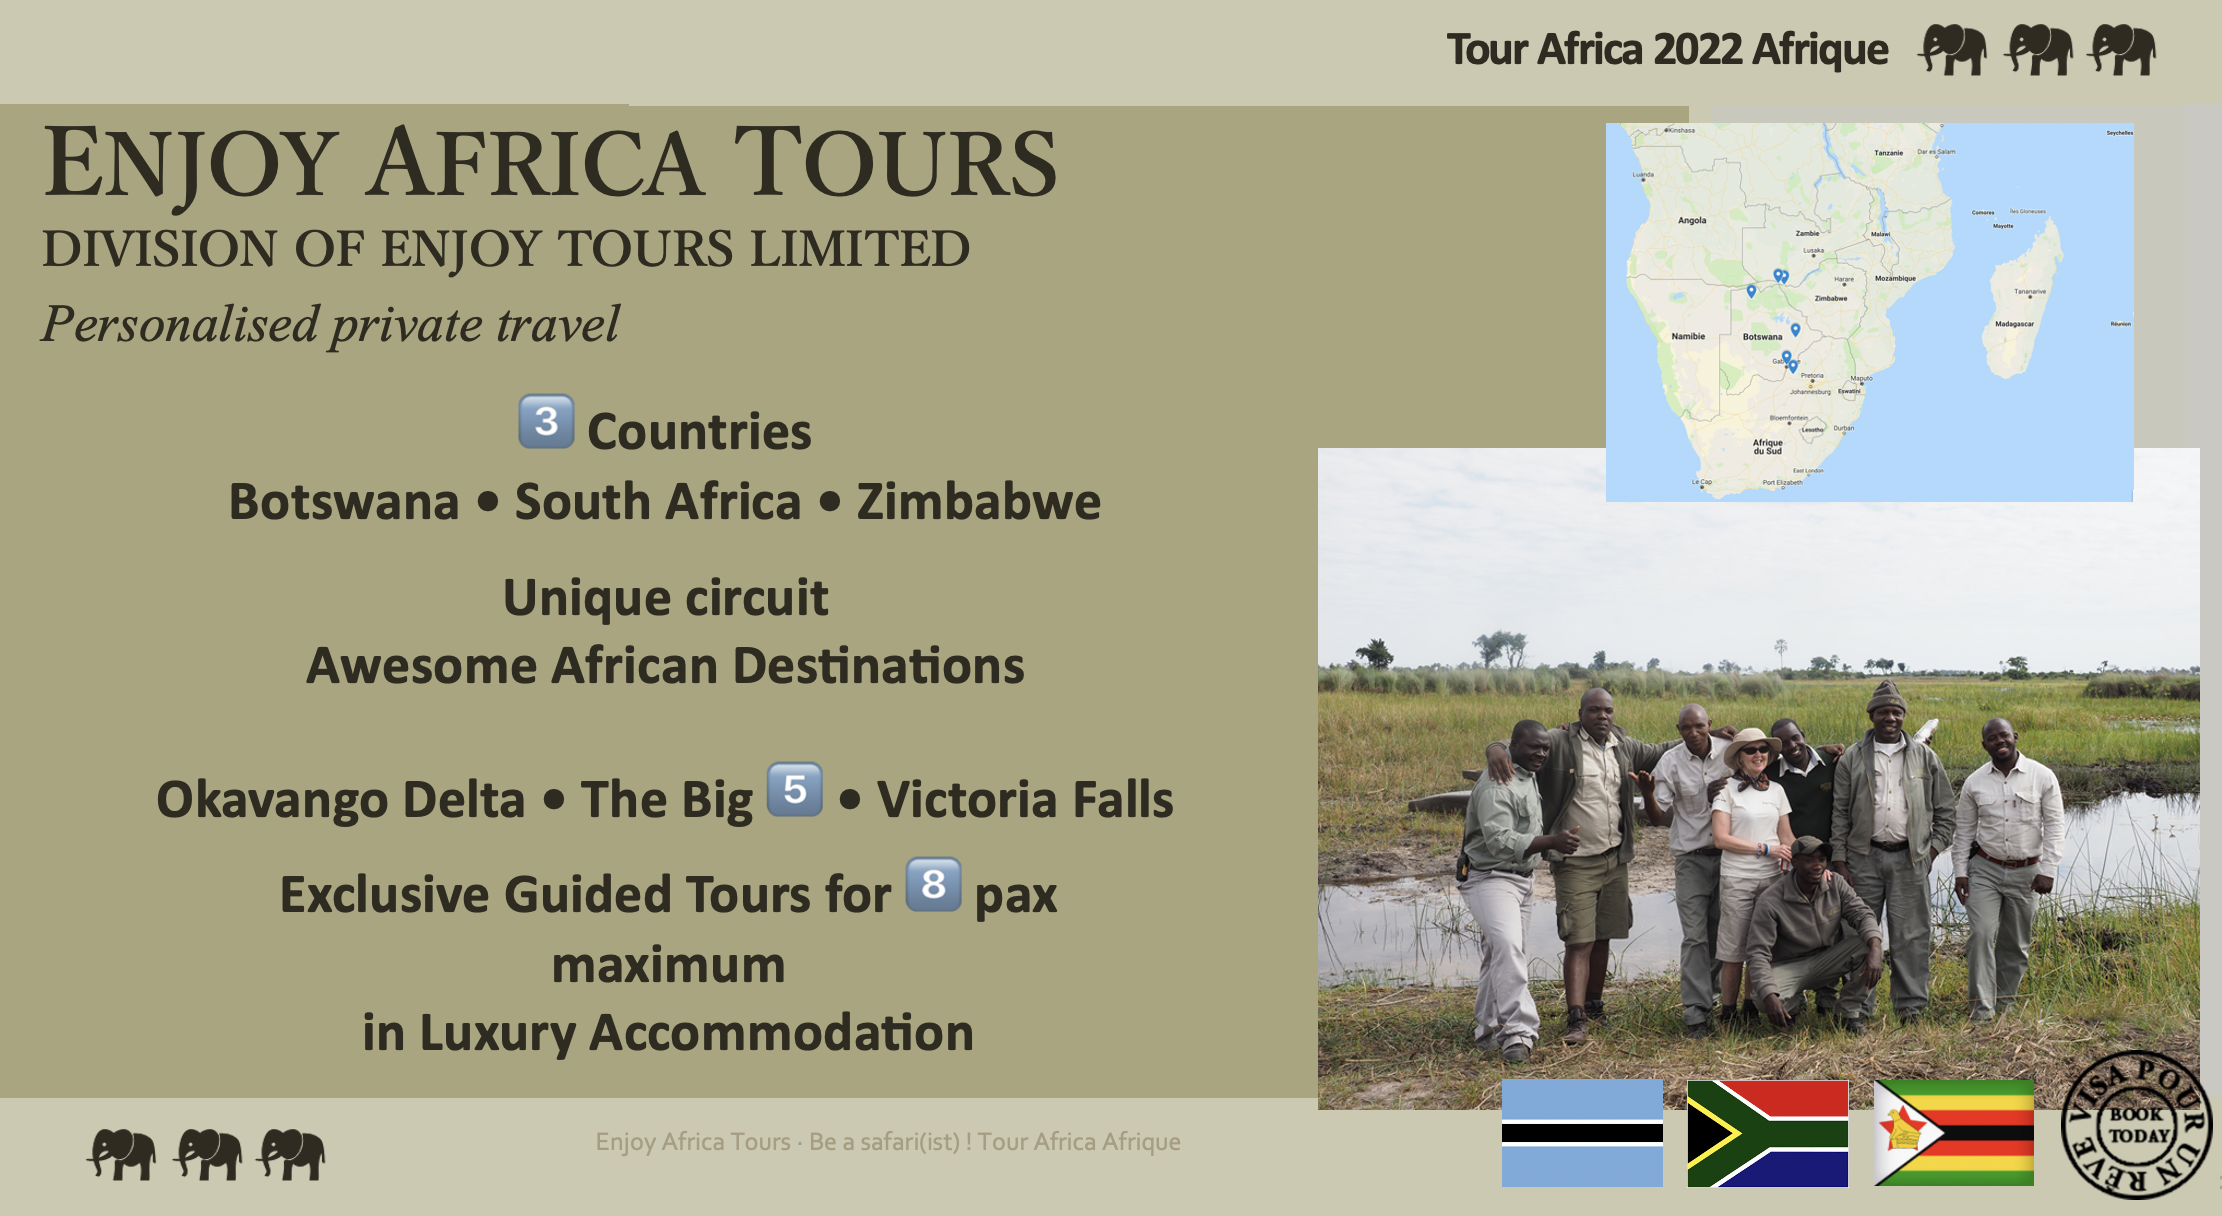 Enjoy Africa Tours Africa 2022